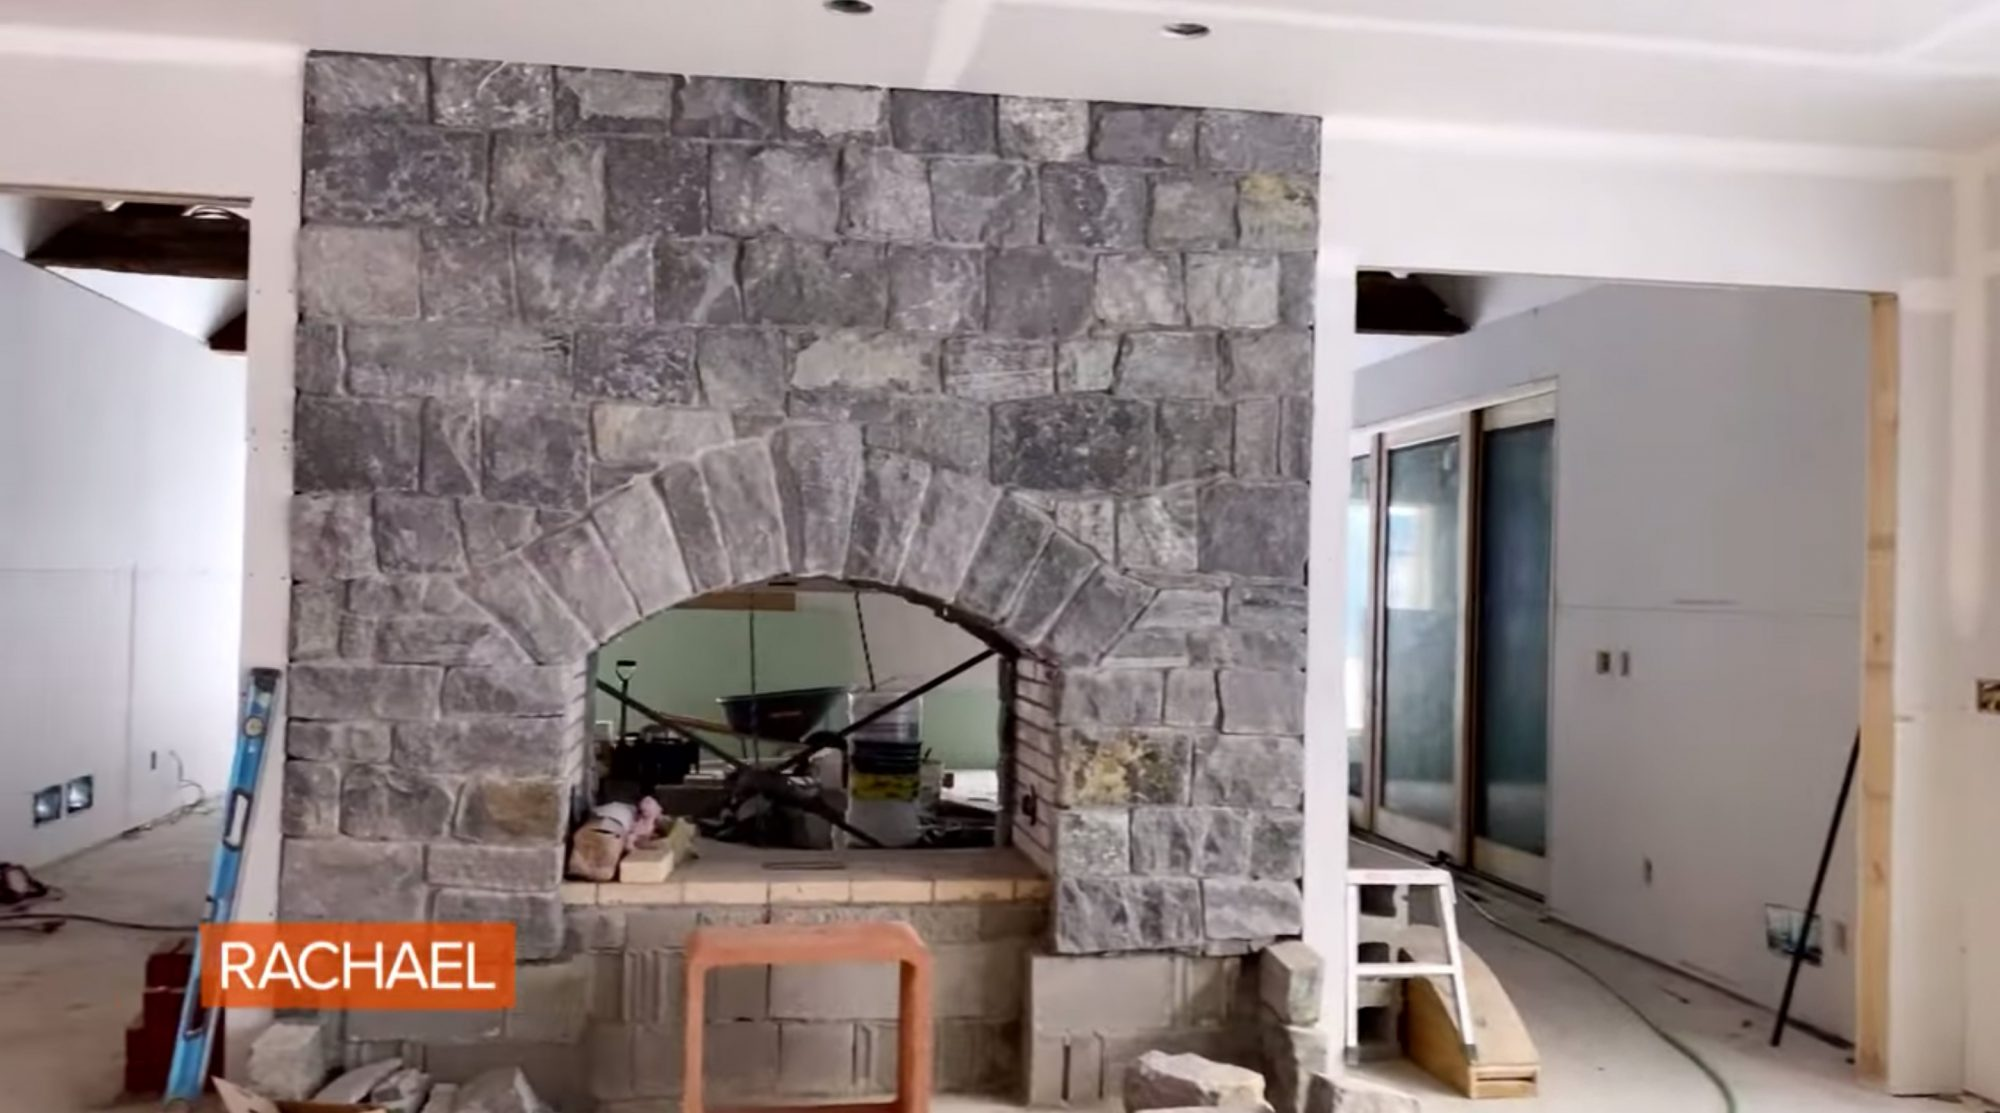 Rachael & John Show Frame Of The Home They're Rebuilding After Summer 2020 House Fire